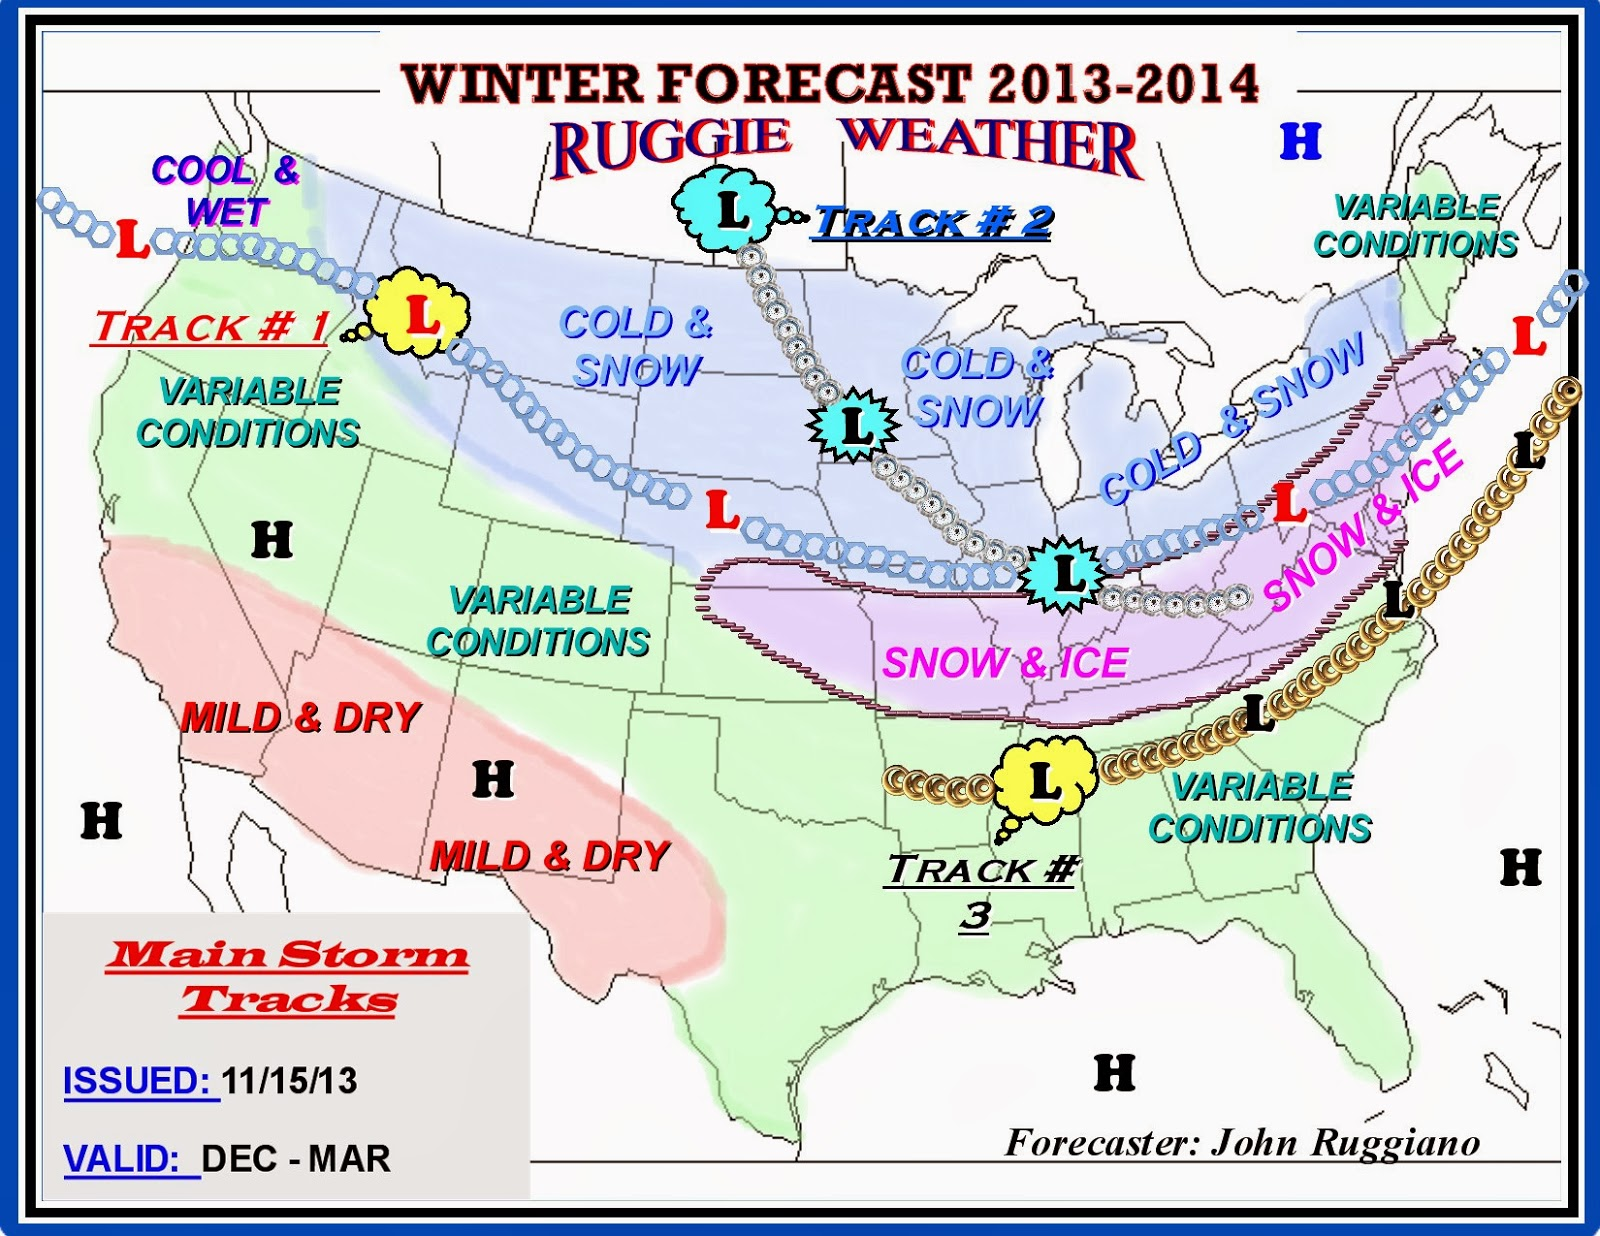 RUGGIE WEATHER My 20132014 Winter Forecast